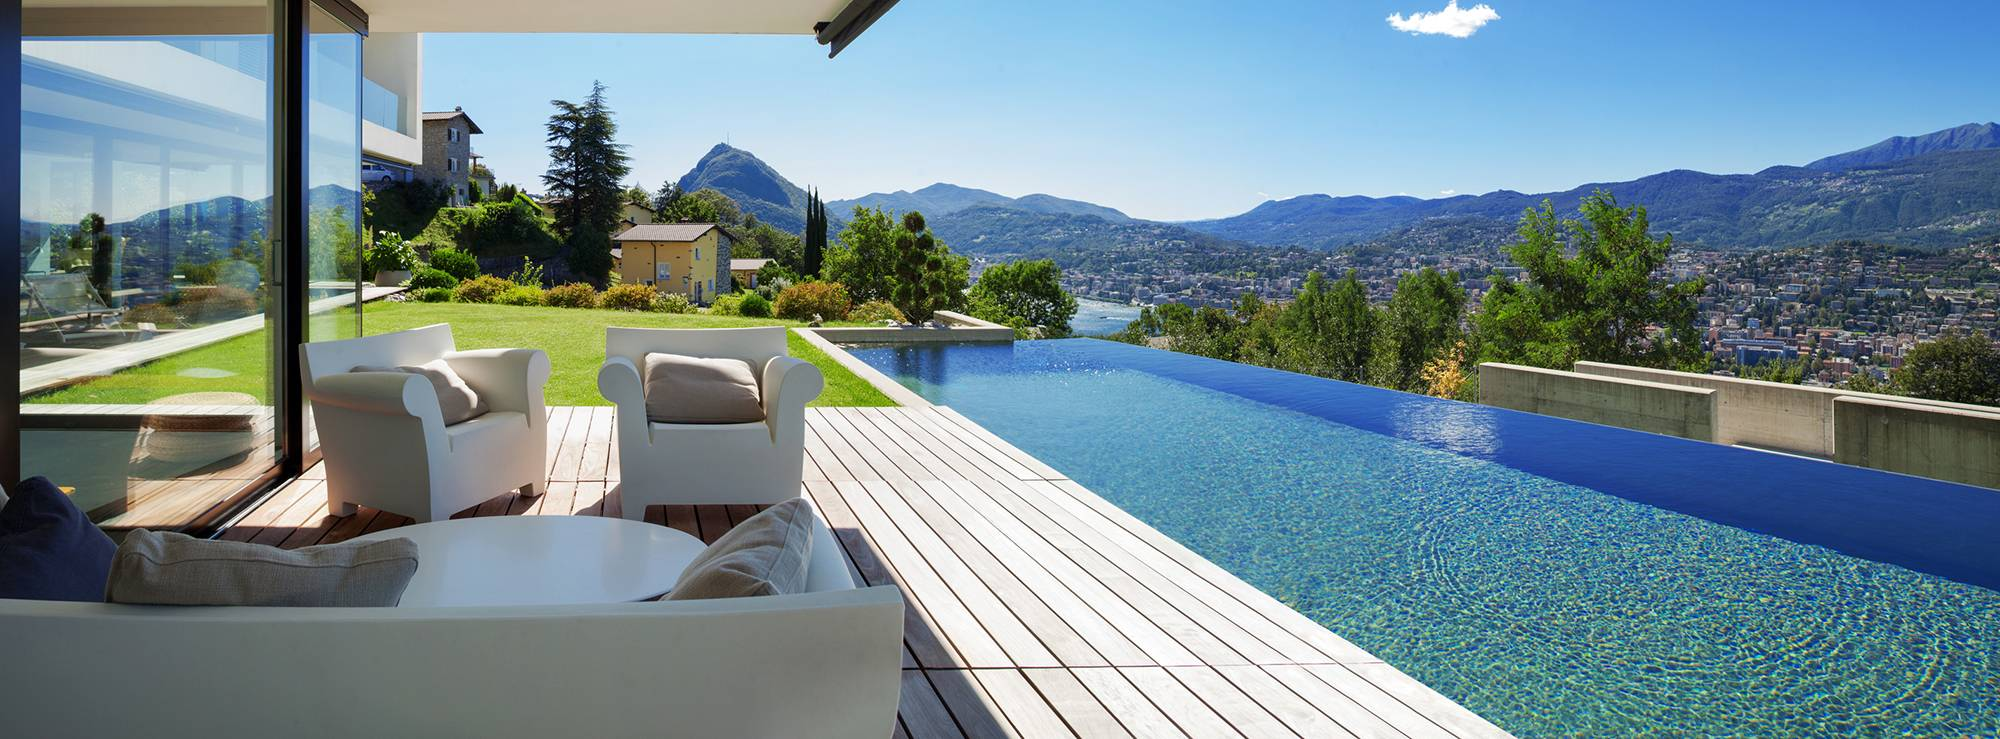 Swimming Pool Service & Supply Companies Who Reach Pool Owners Make Sales